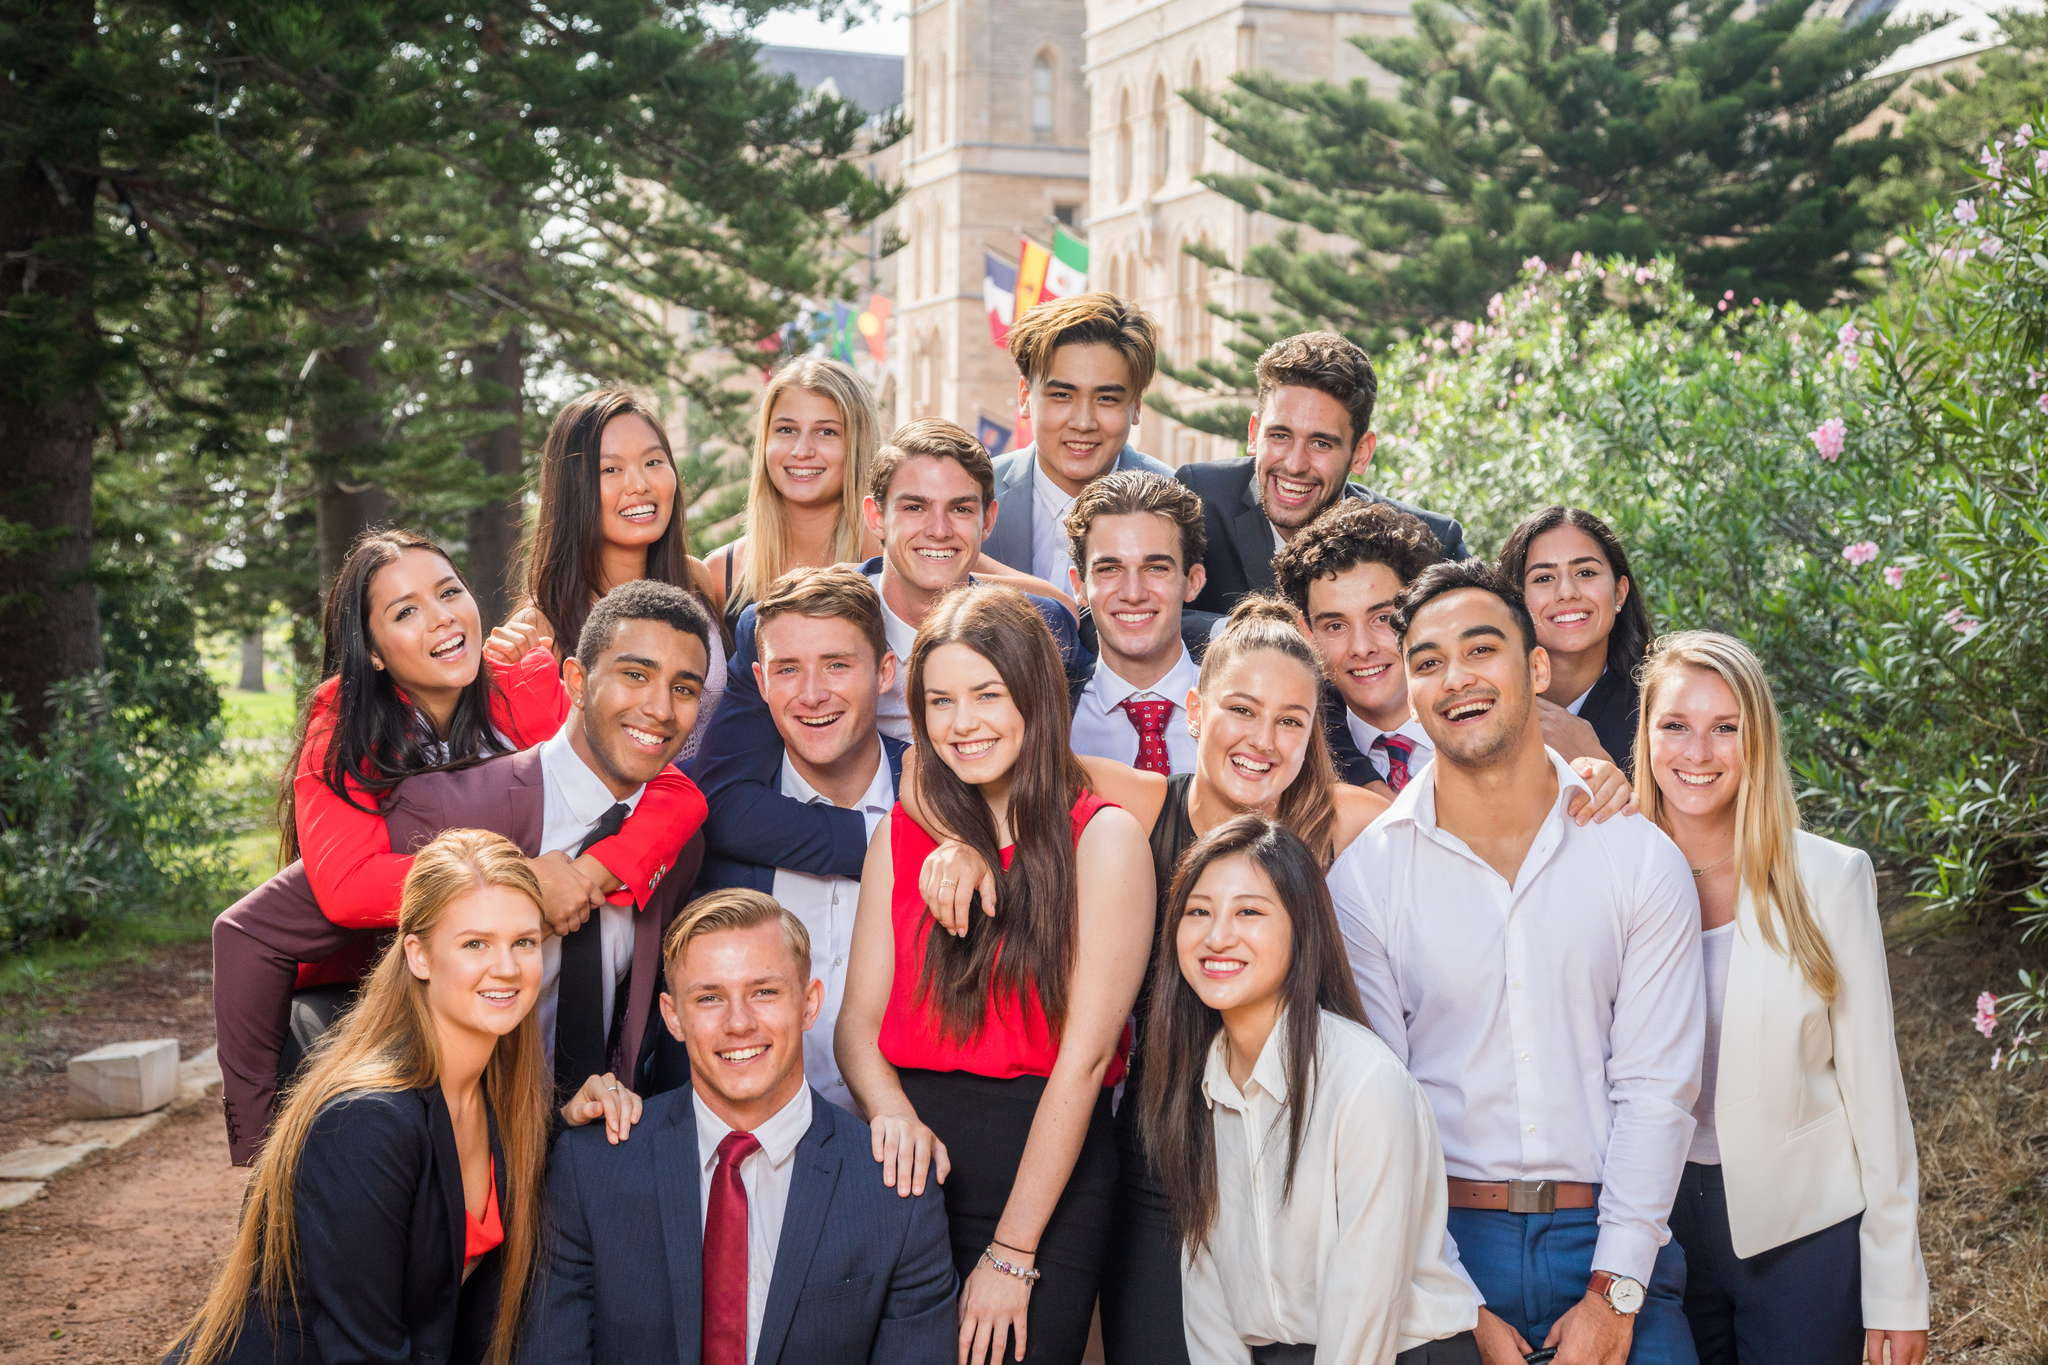 International_College_of_Management_Sydney_5_180406_ICMSMANLY-0157